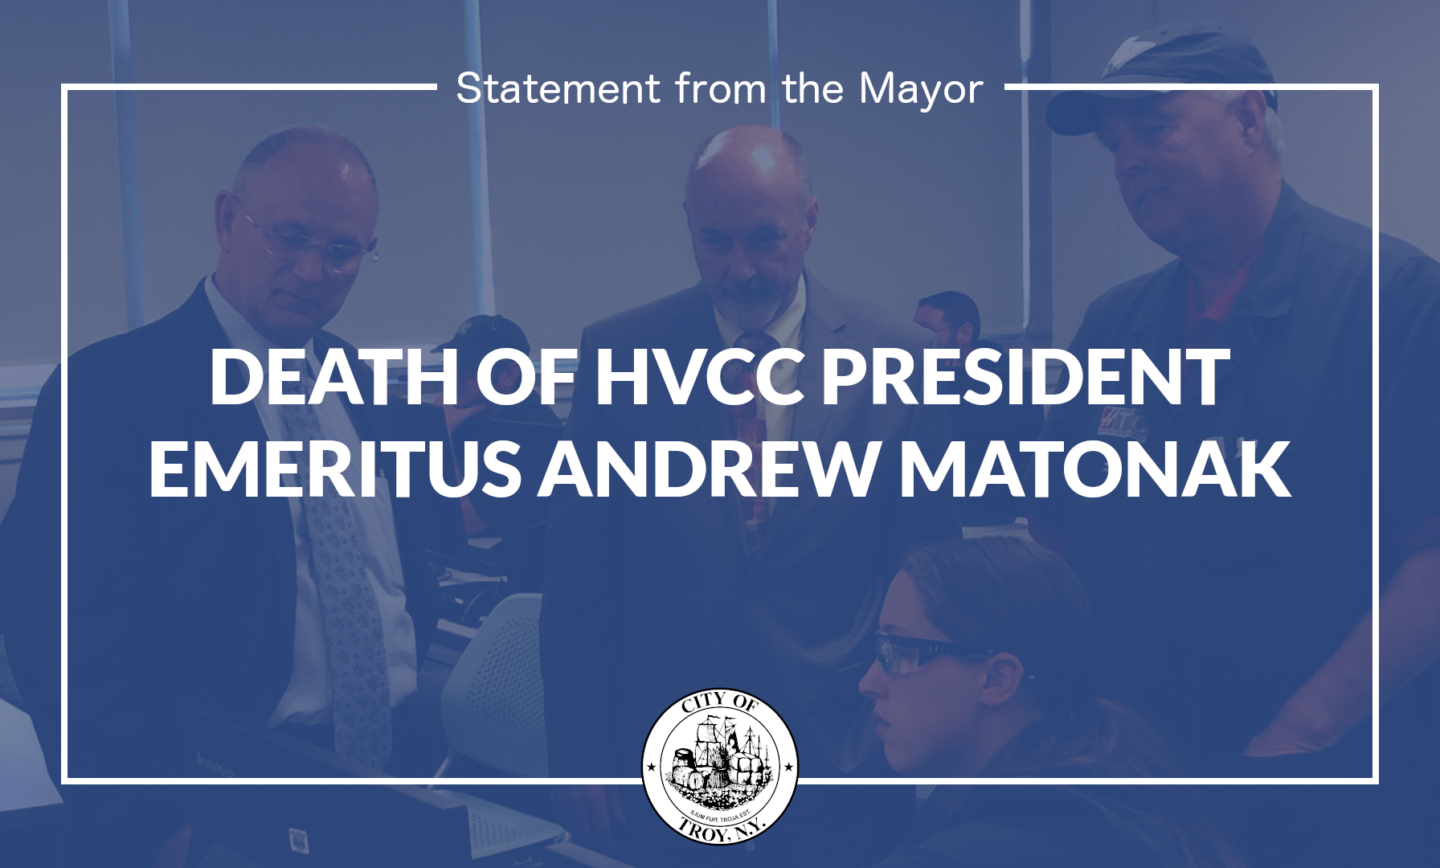 Statement from Mayor Madden on the Death of HVCC President Emeritus Andrew Matonak